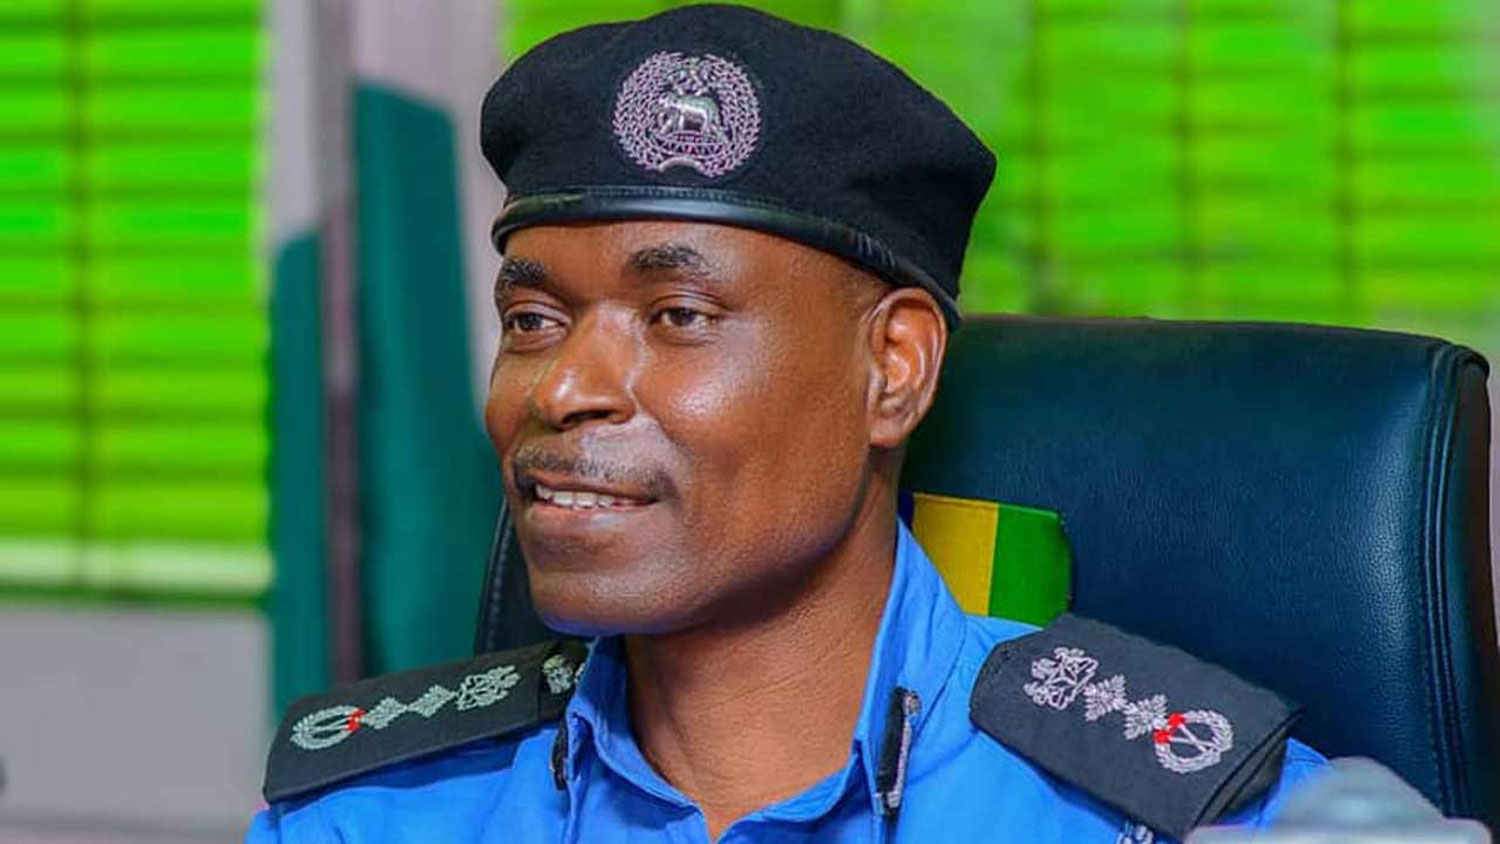 Inspector General of Police regulates social media use for officers